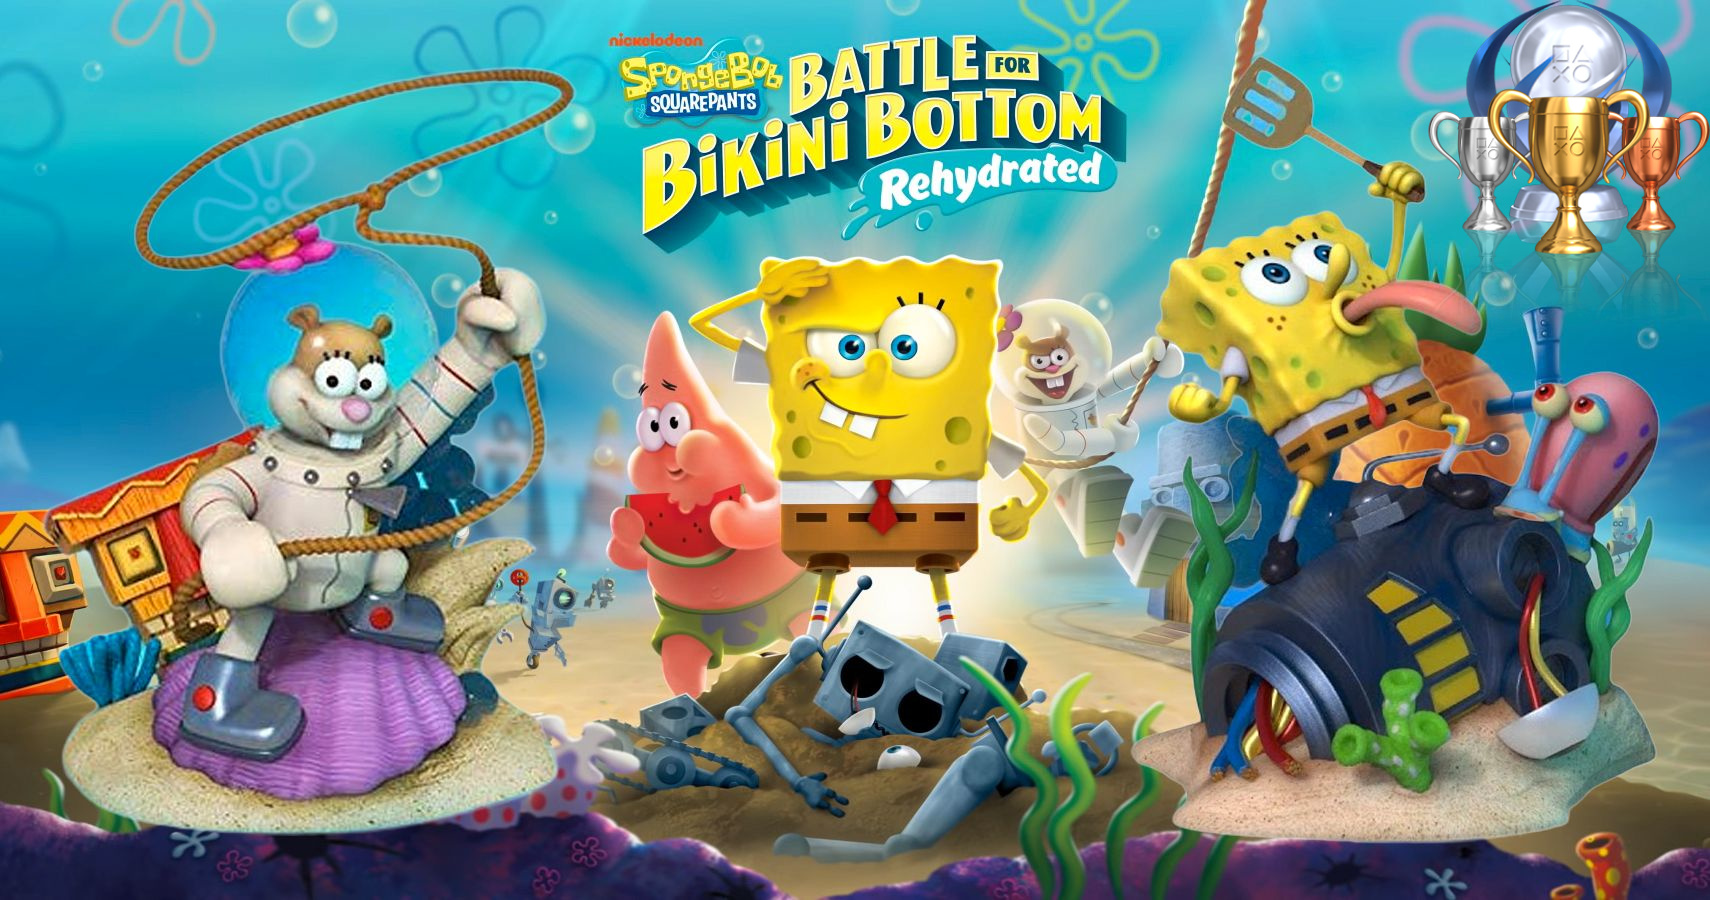 SpongeBob-SquarePants-Battle-For-Bikini-Bottom-Rehydrated-Collectors-Edition (1)